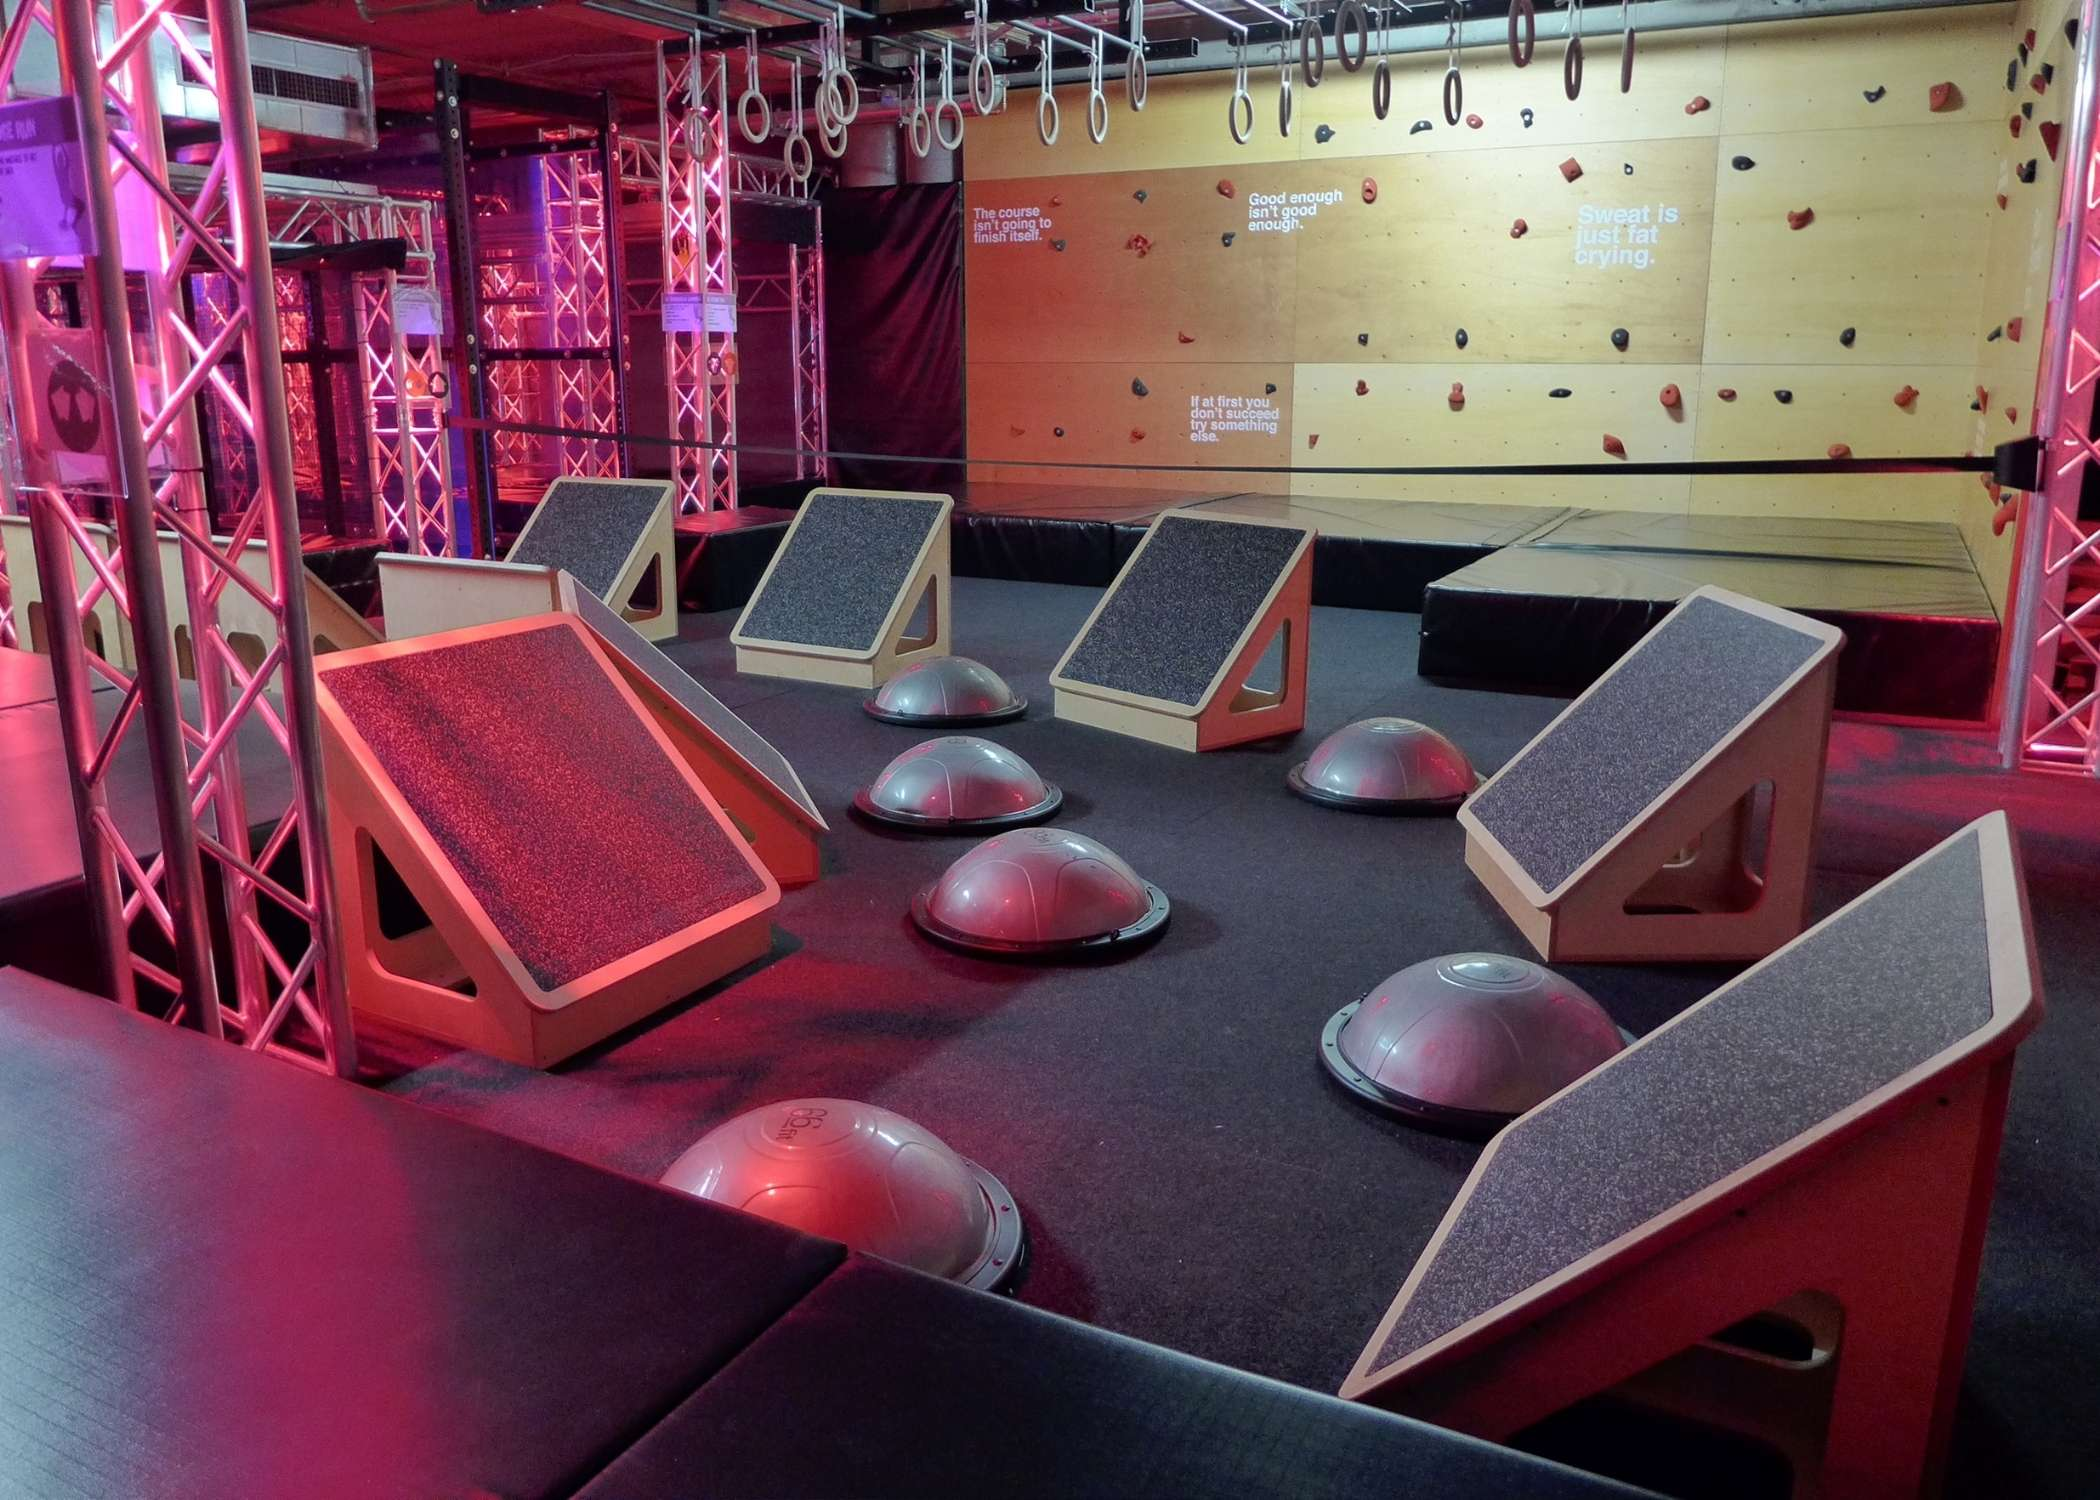 ninjar warrior course, obstacle course installation